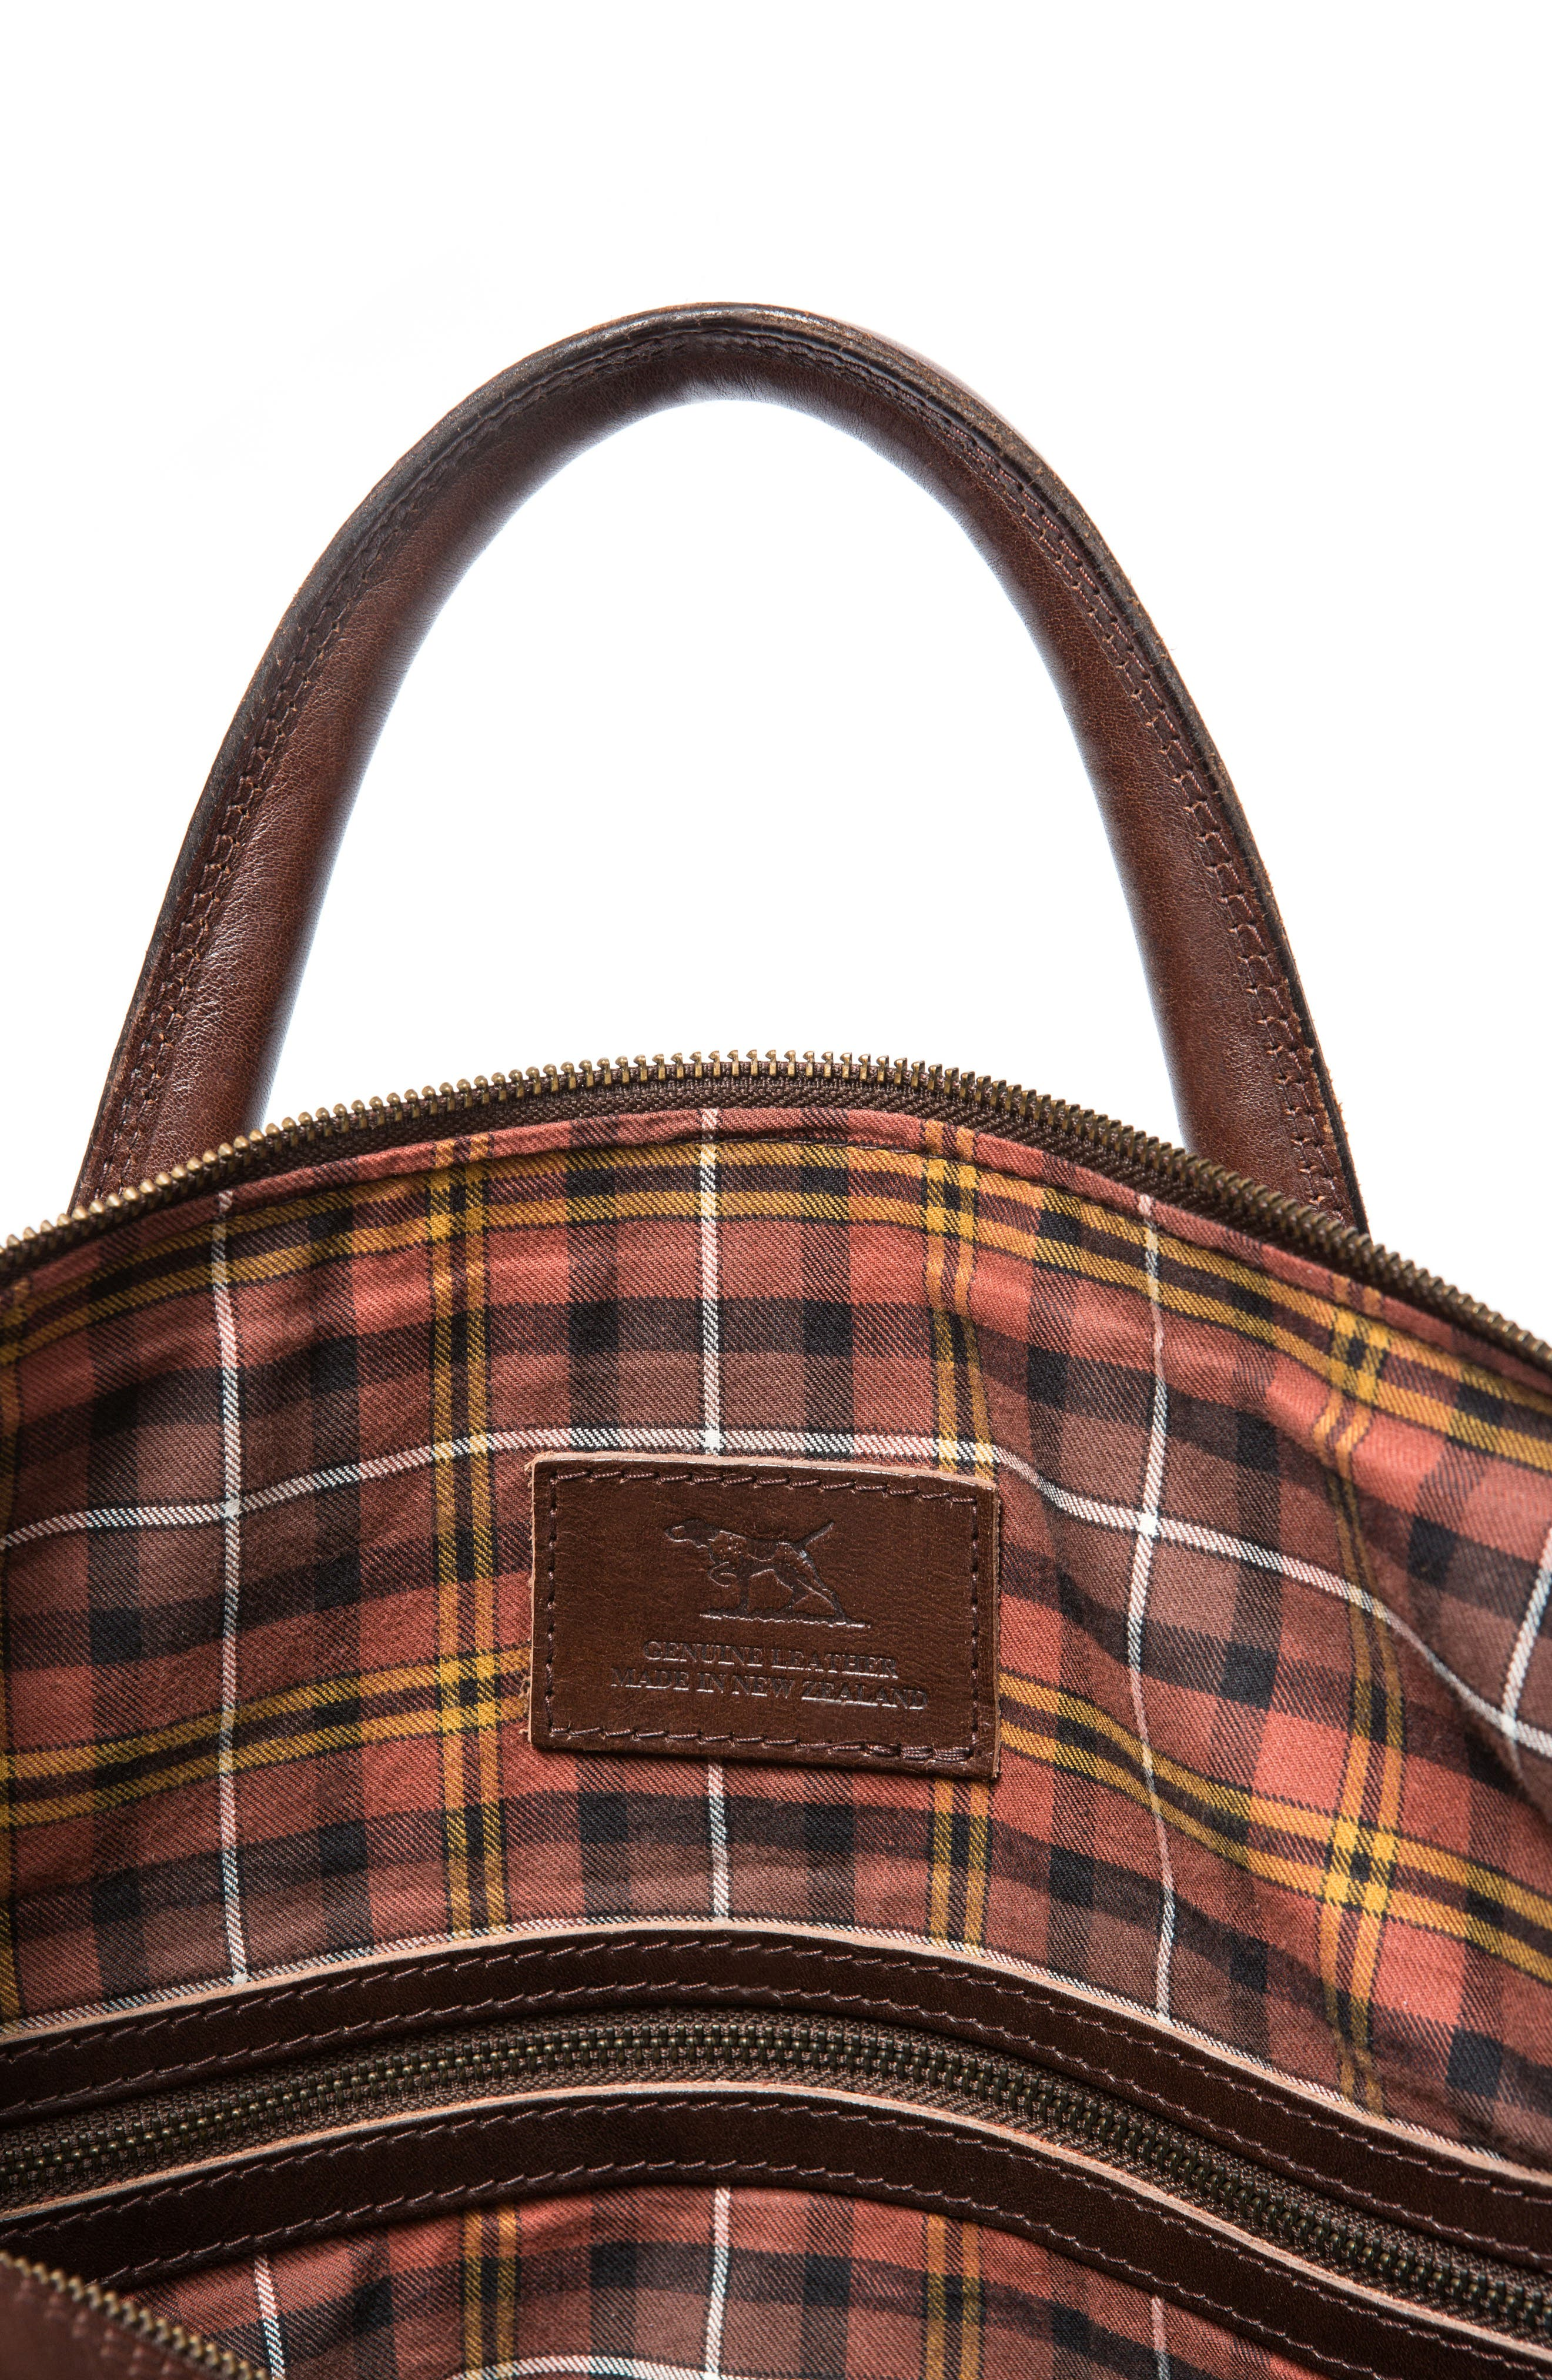 Normanby Duffel Bag,                             Alternate thumbnail 3, color,                             Cocoa